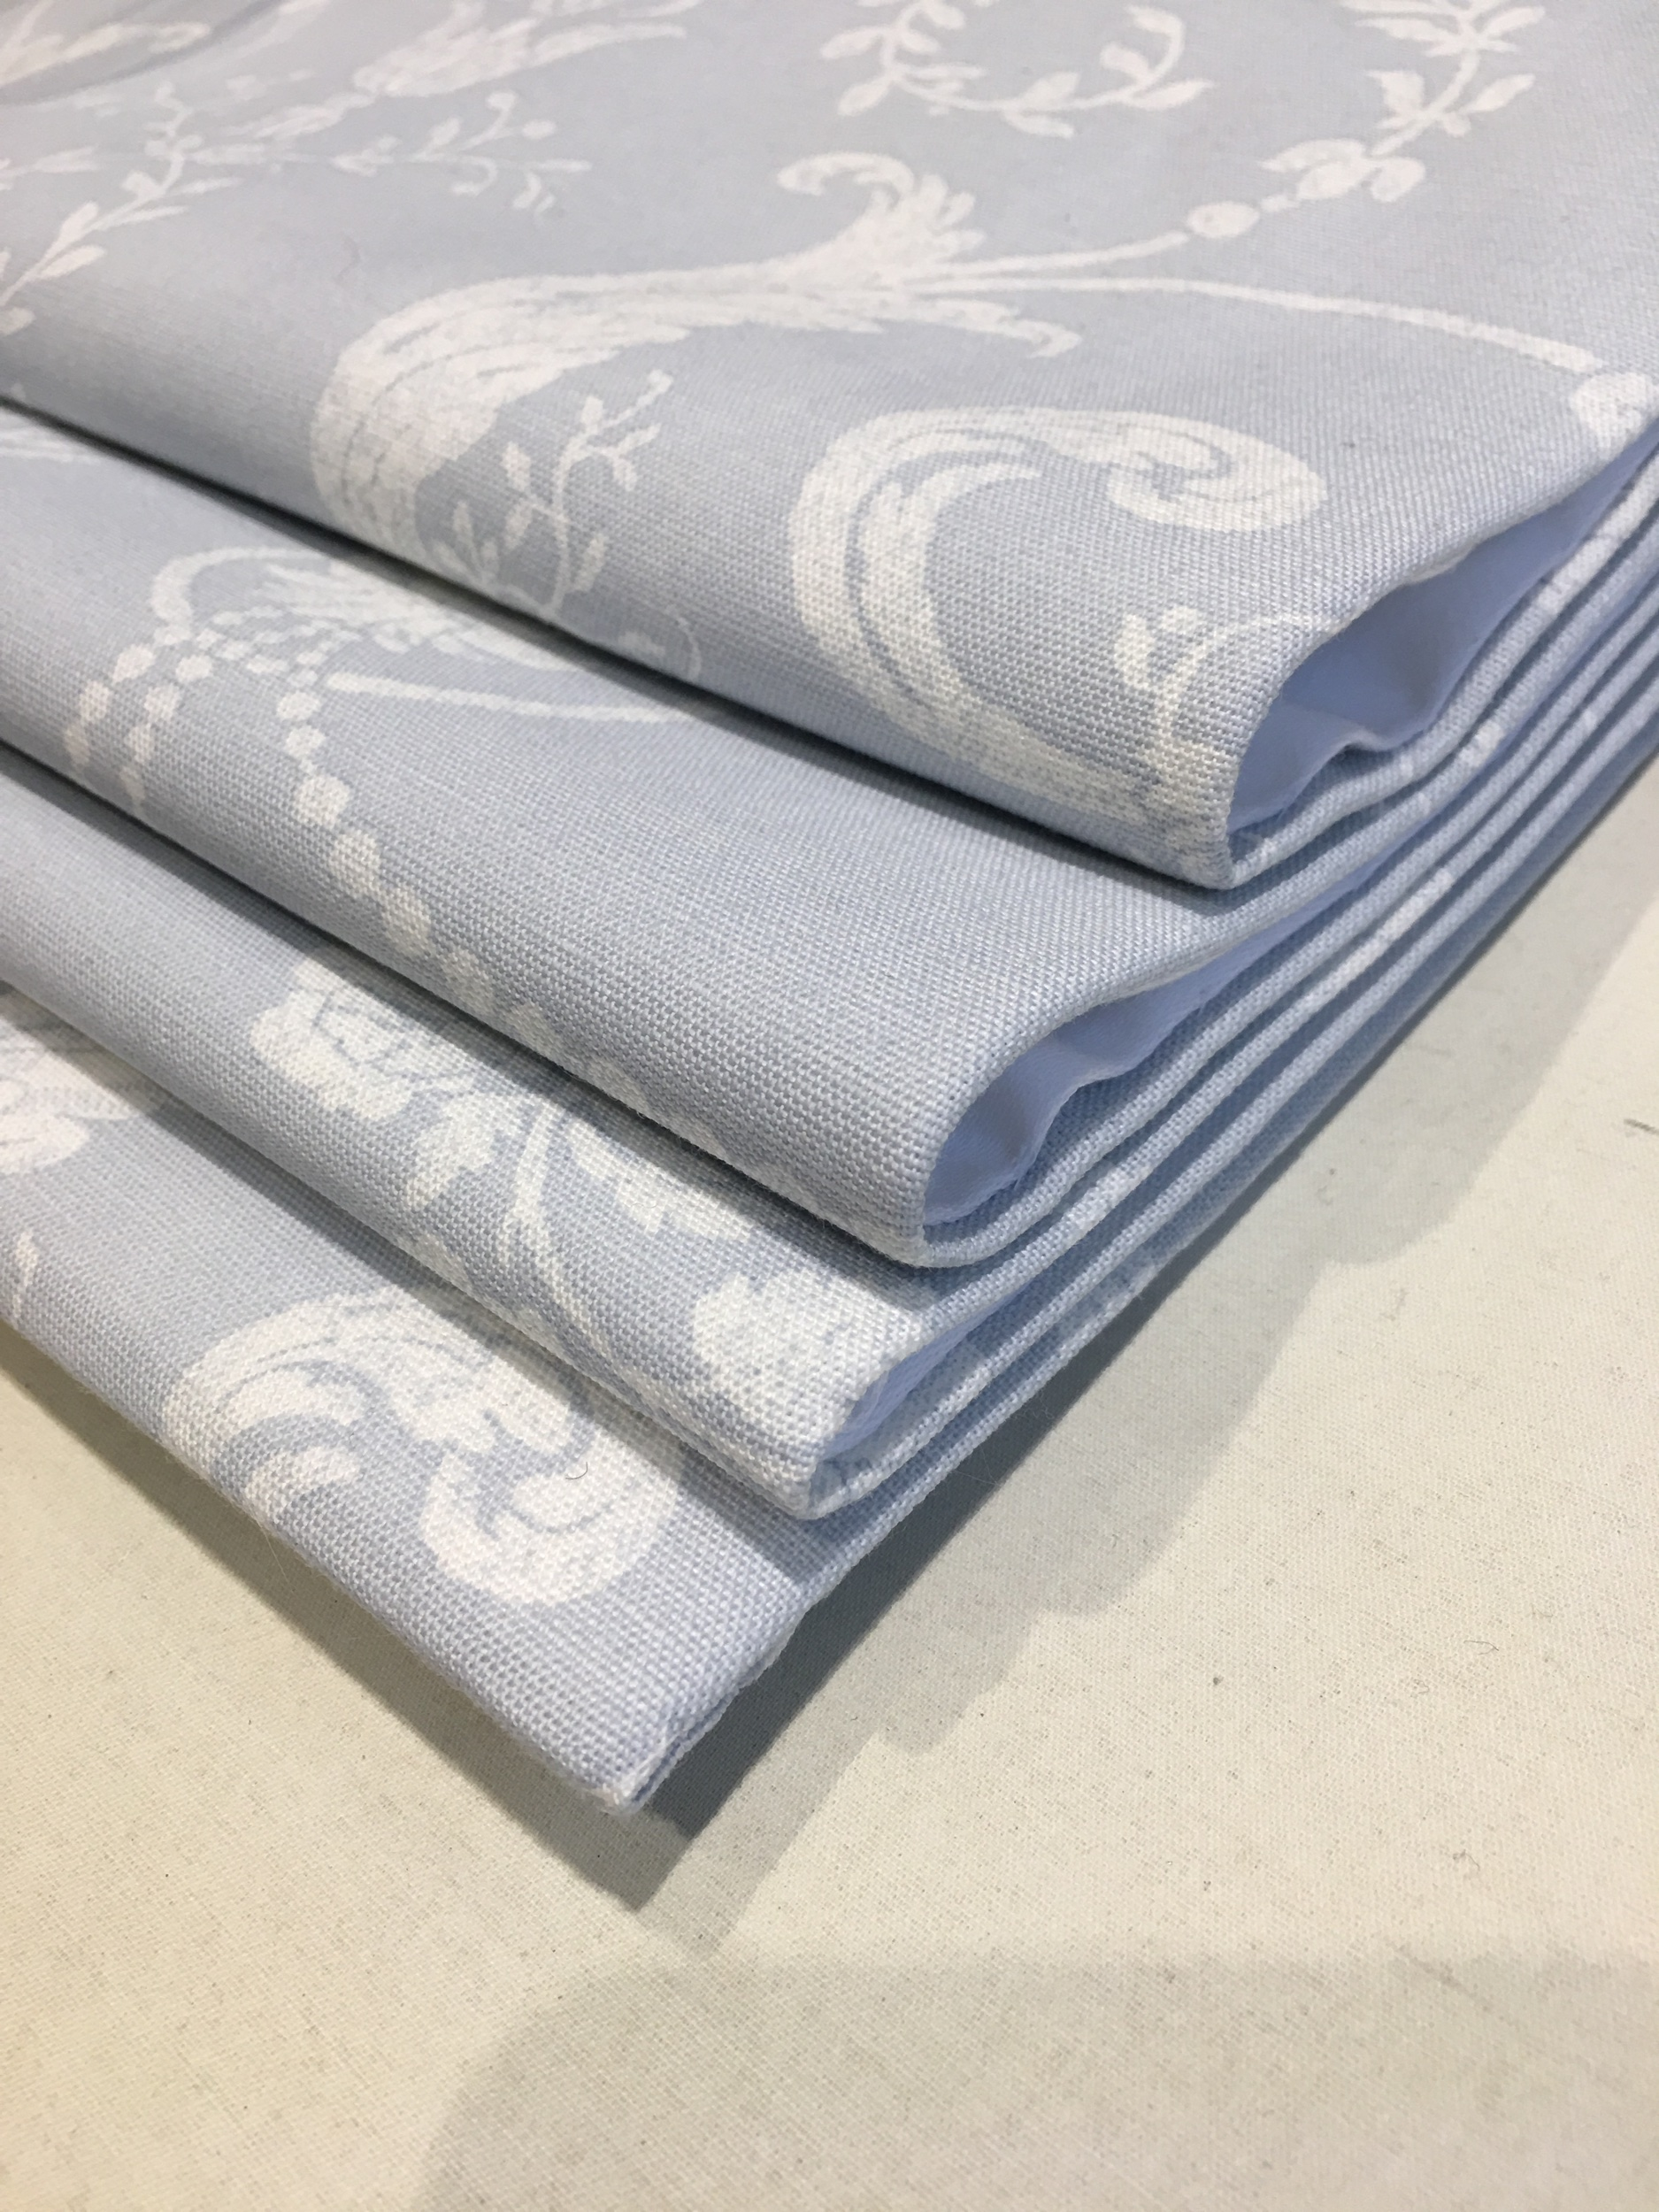 Josette fabric by Laura Ashley rap £36 pm